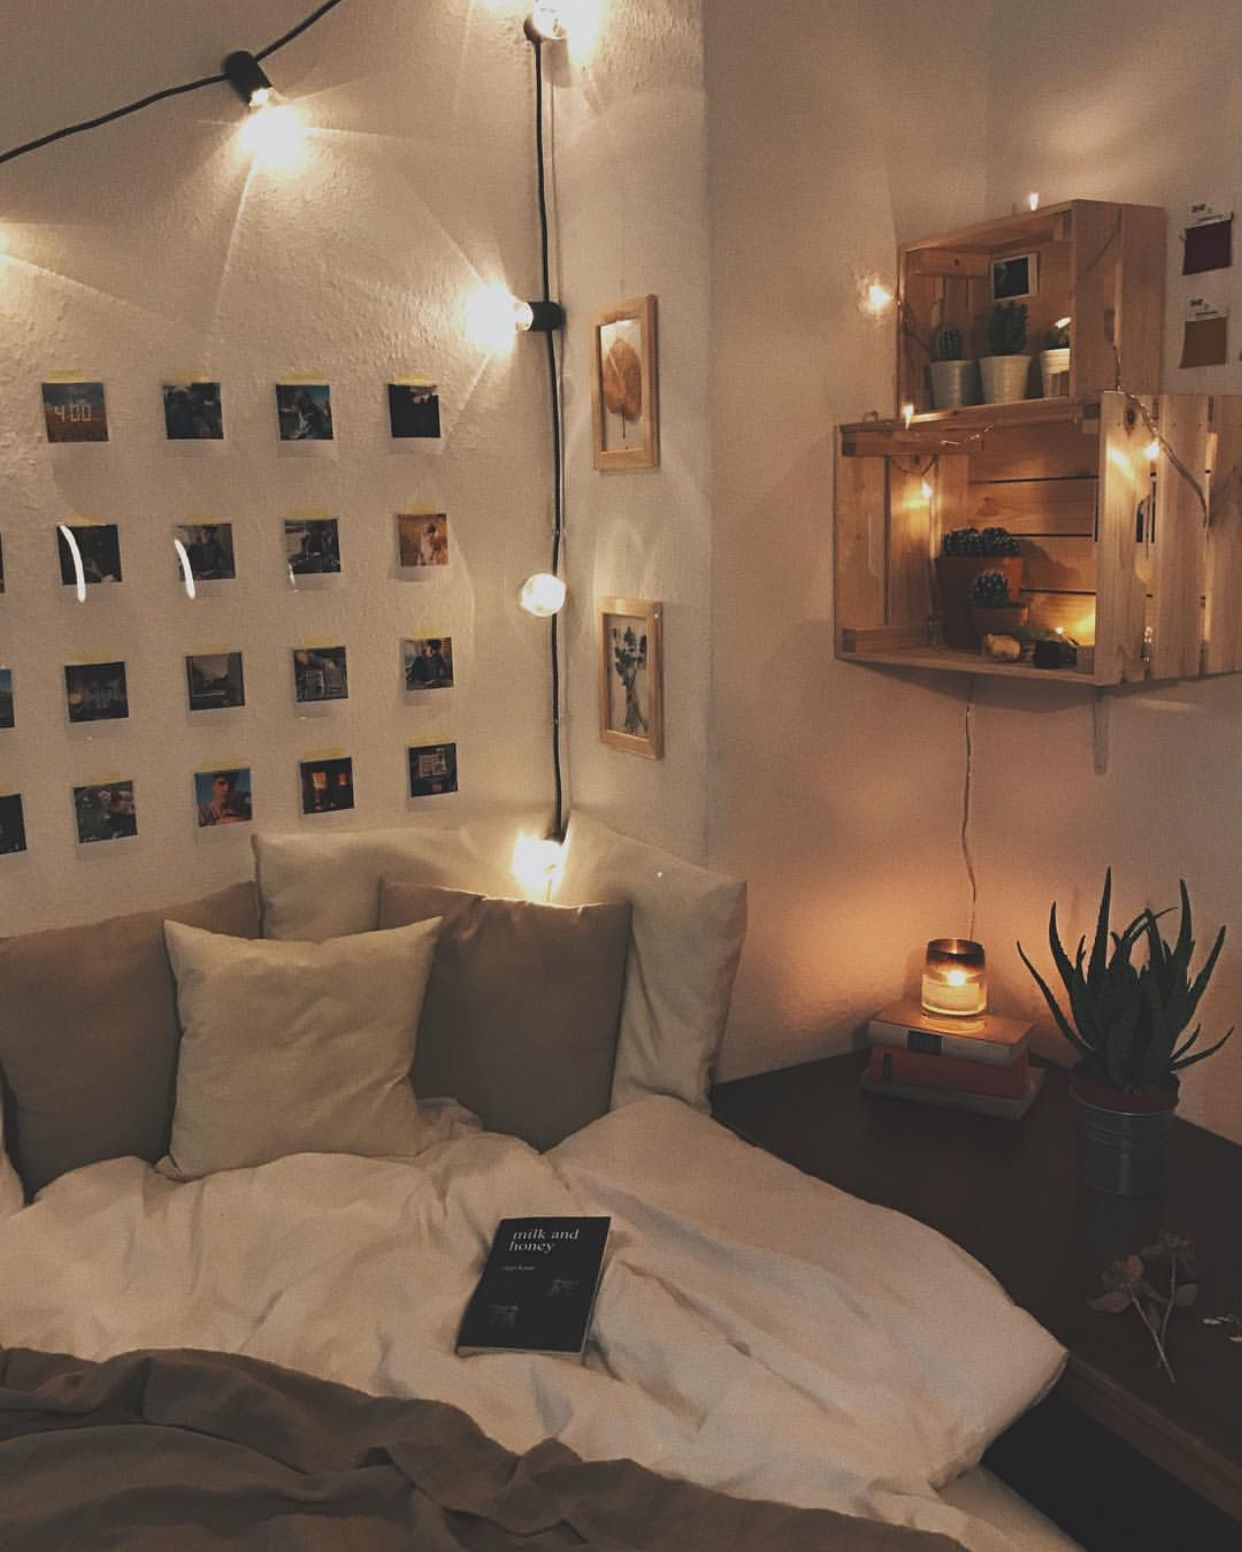 Loft bed lighting ideas  Pin by nellie gordon on bored board  Pinterest  Bedrooms Room and